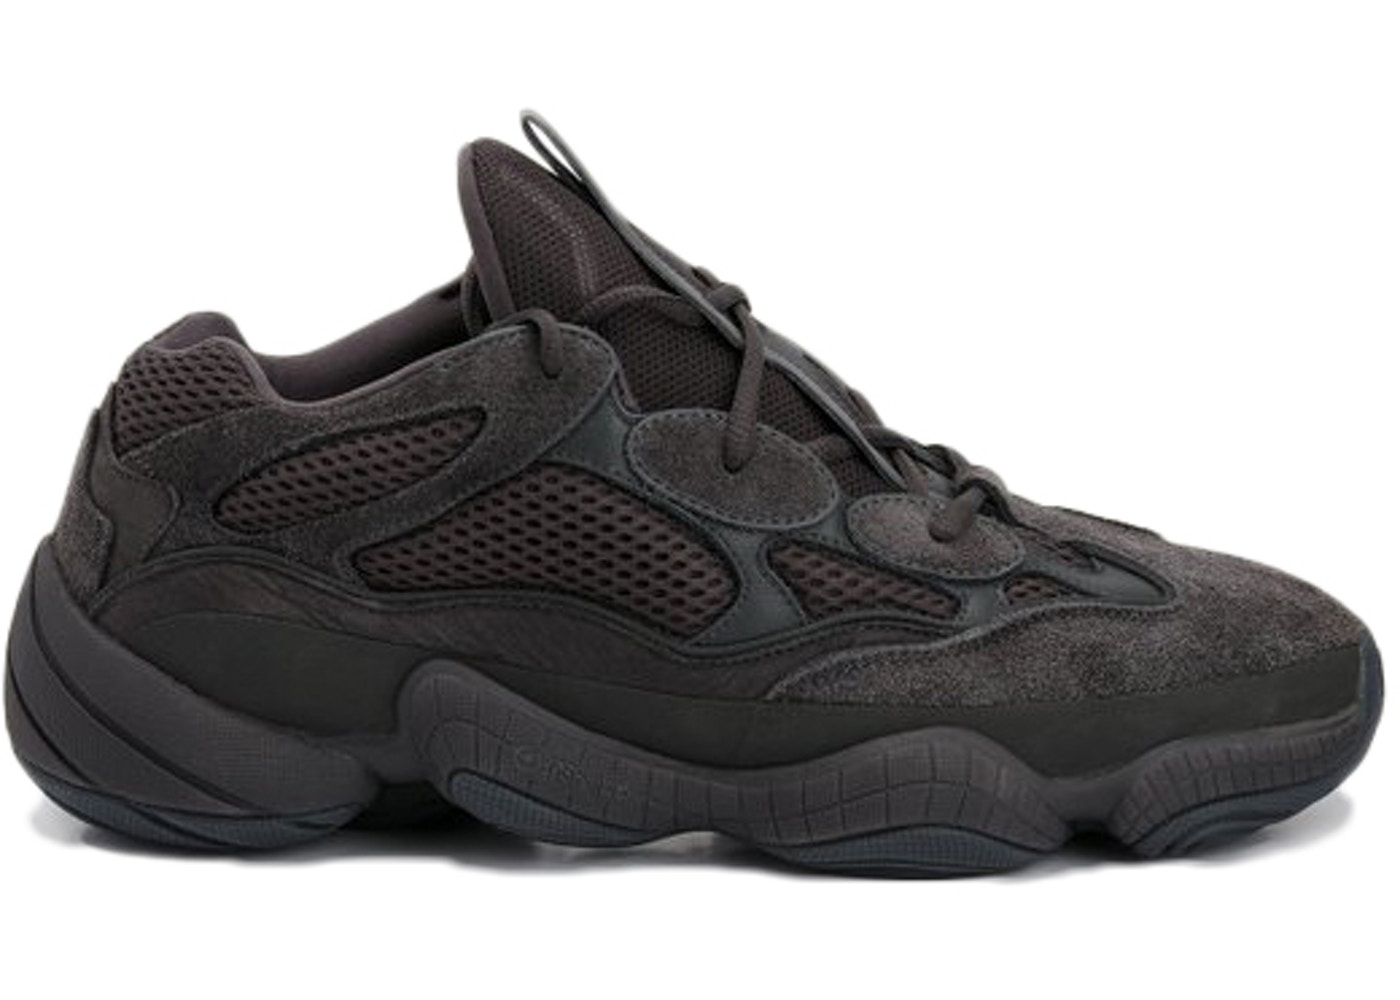 official photos 3c9c1 d88b9 adidas Yeezy 500 Shadow Black (Friends & Family) - Sneakers